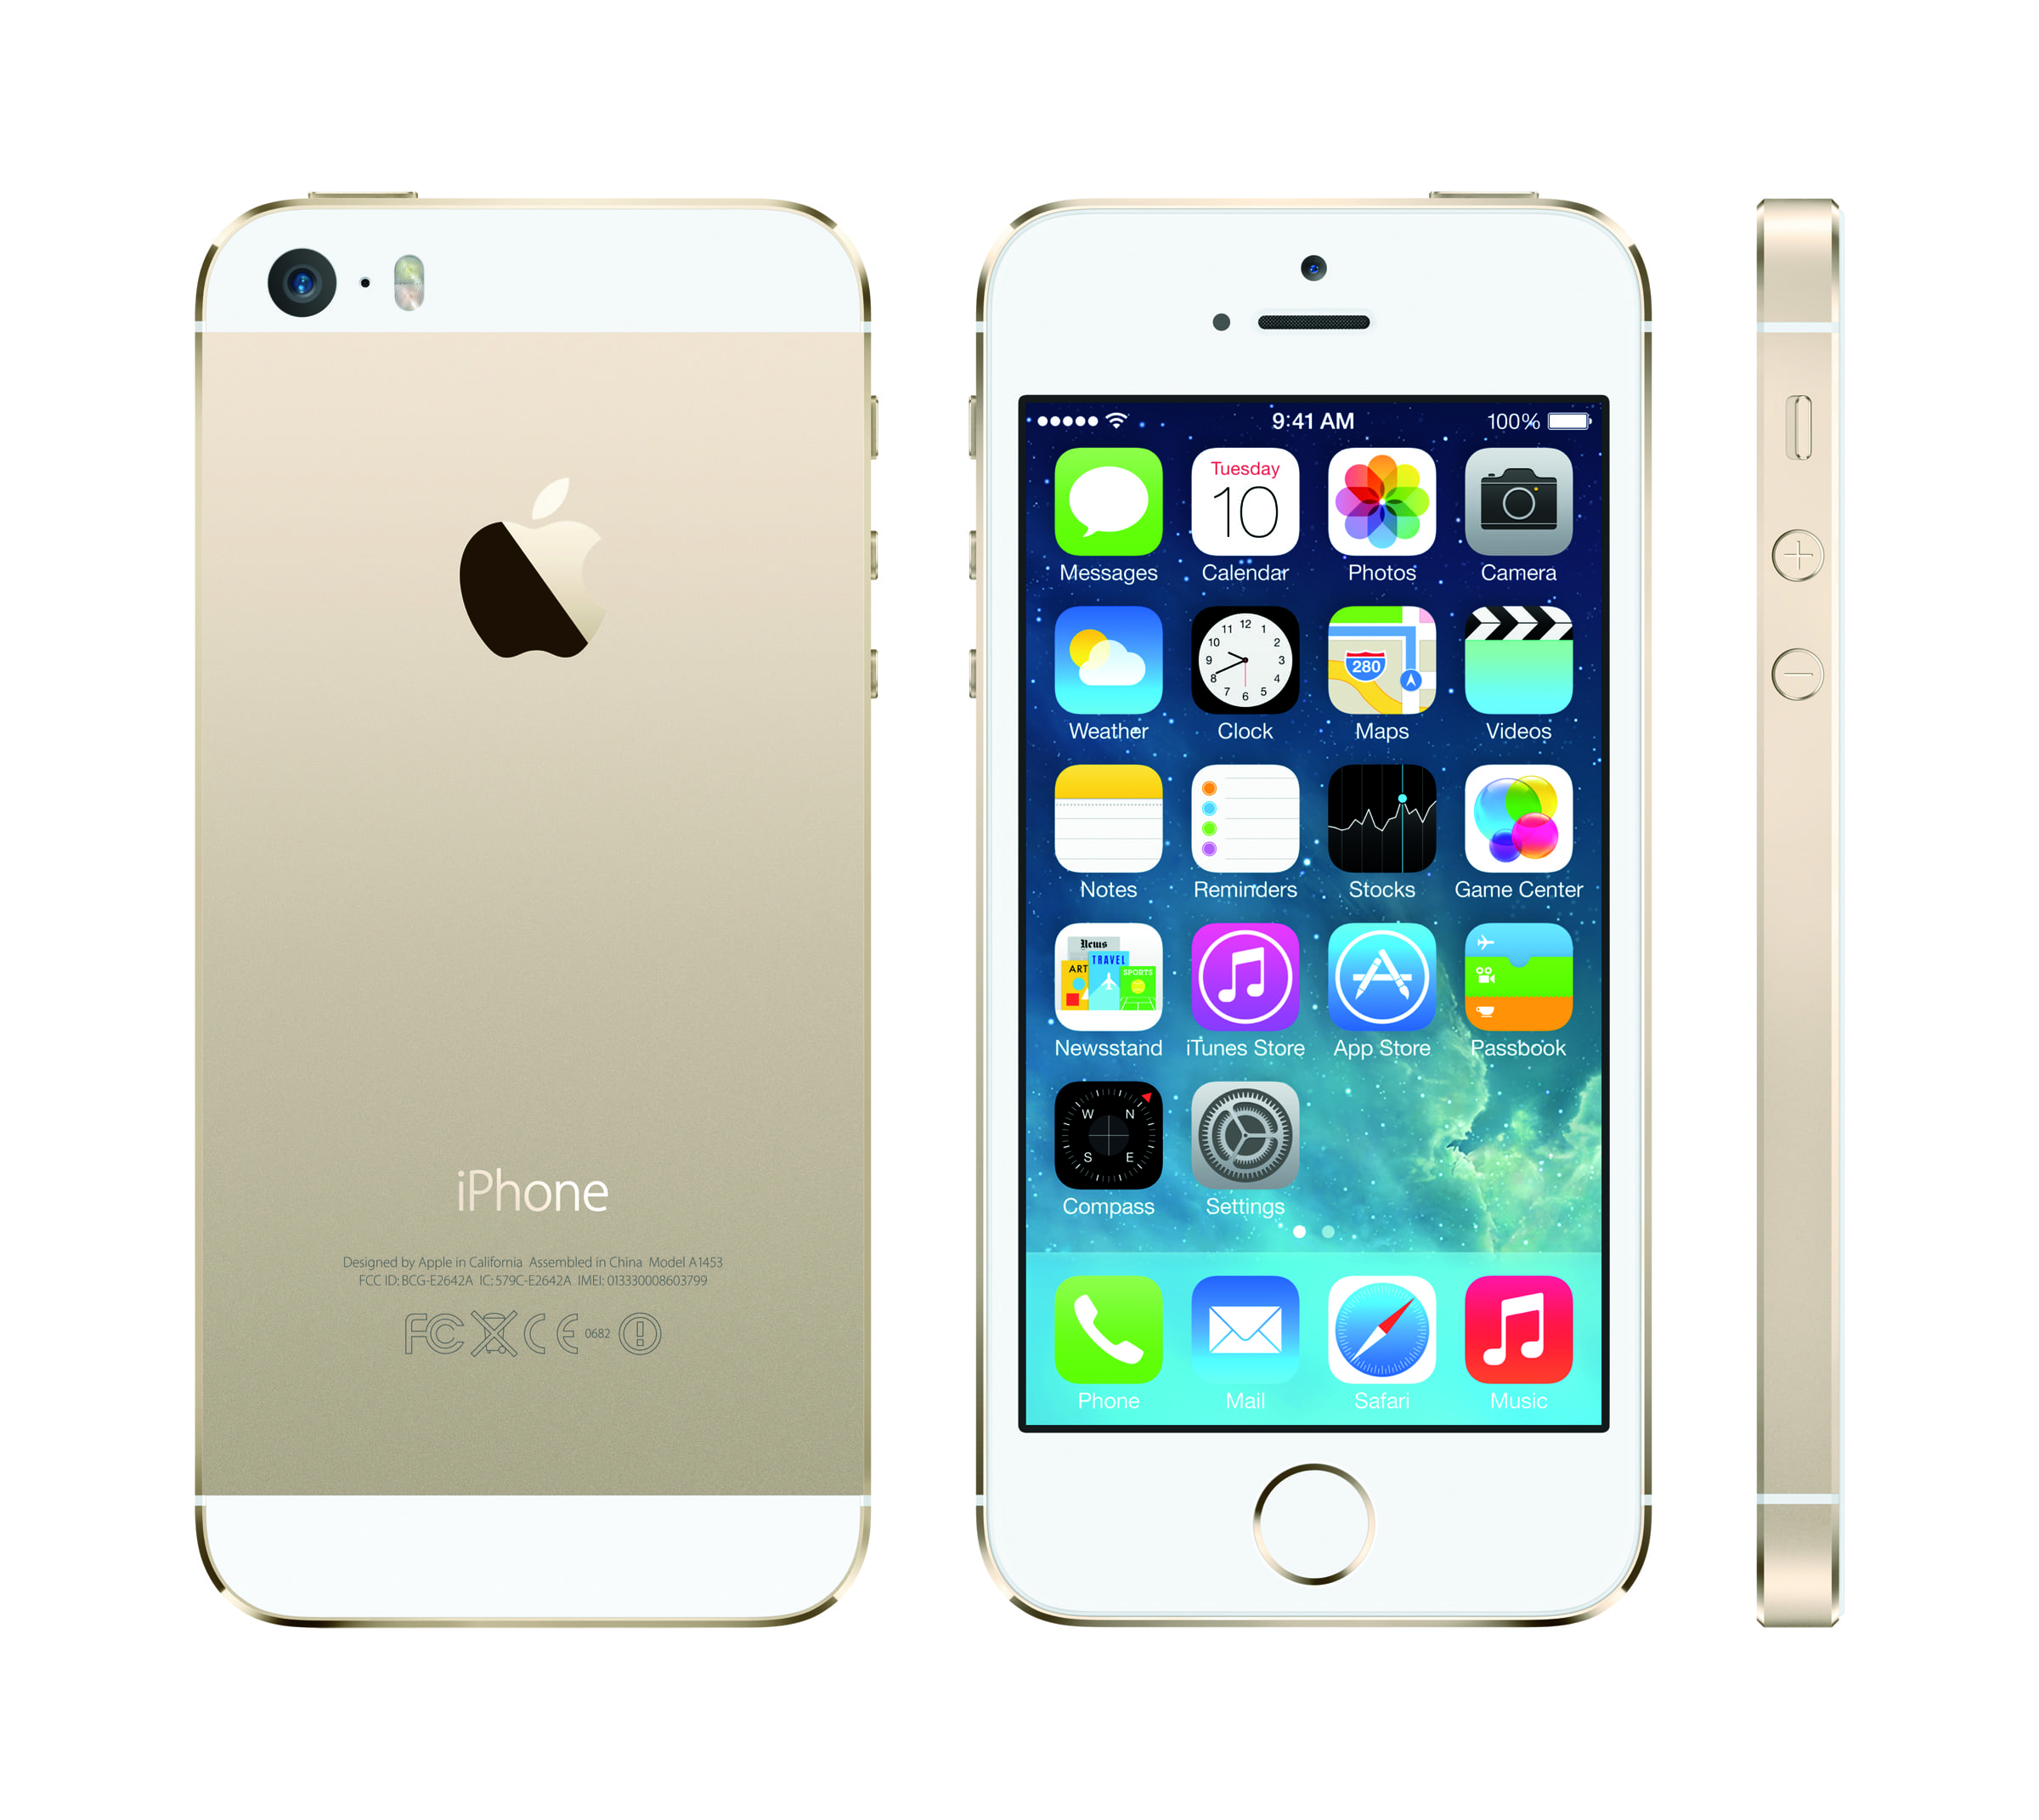 Apple iPhone Now Available to 700 Million China Mobile Customers